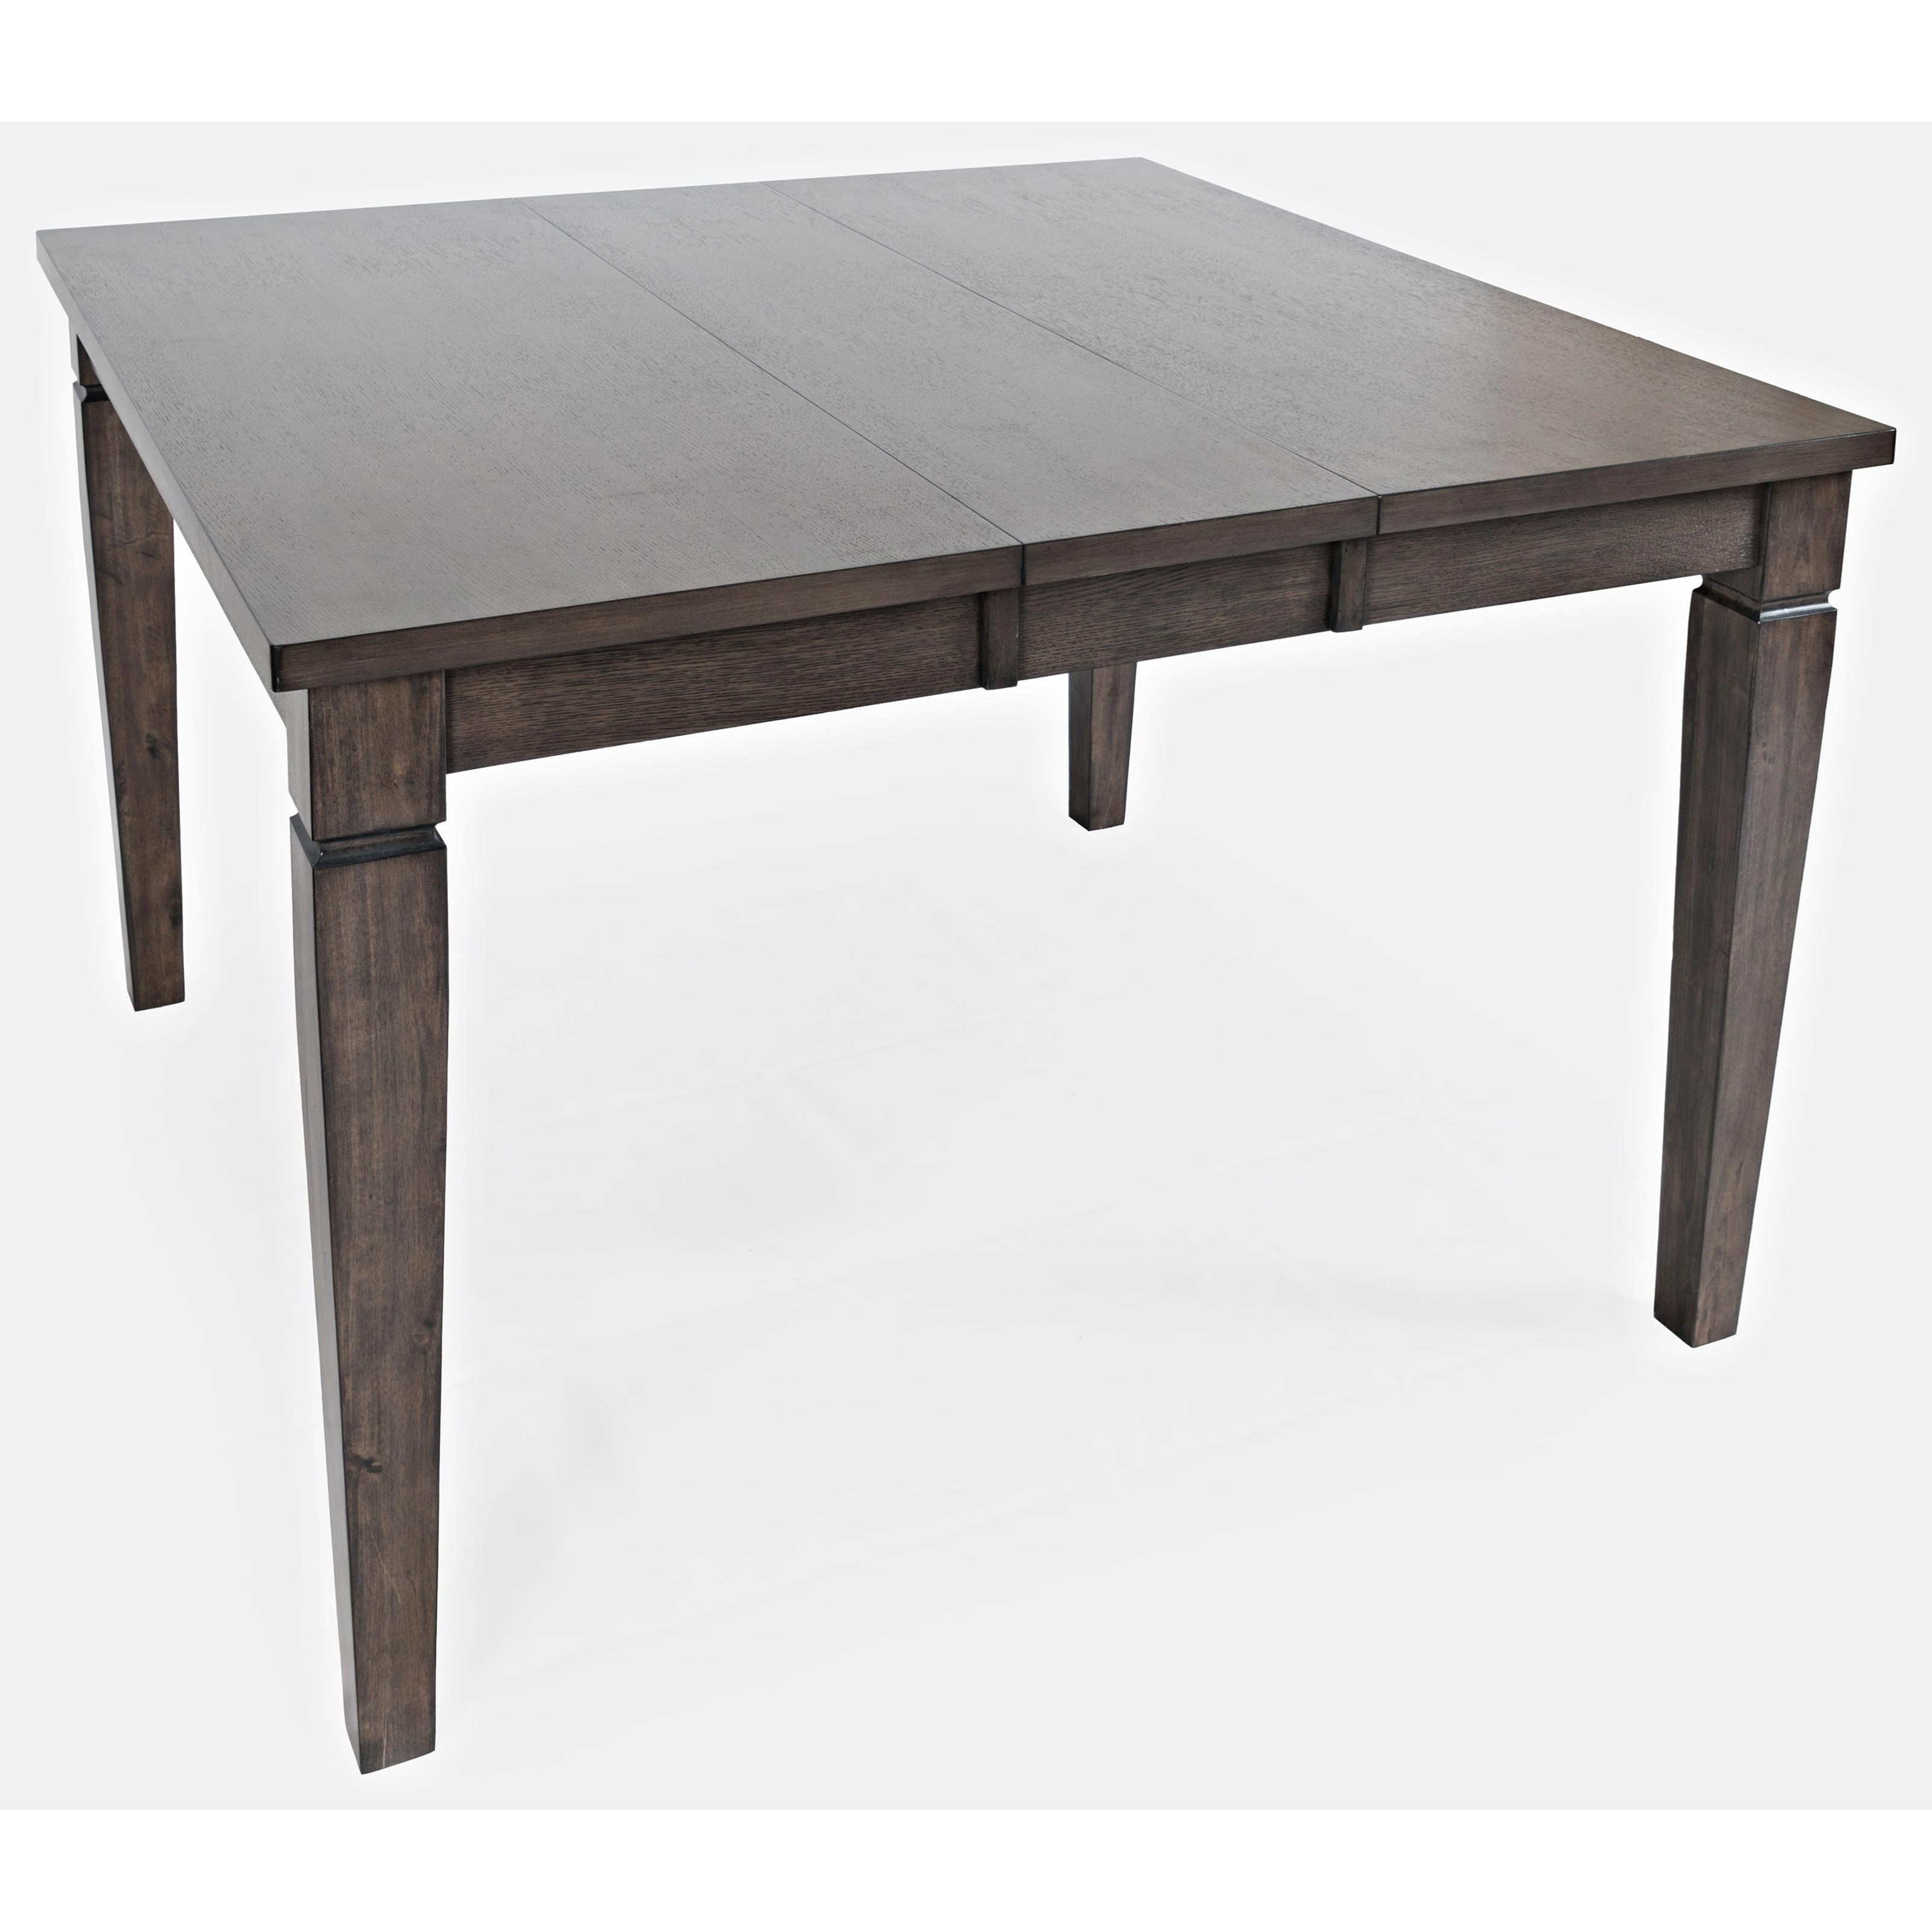 Lincoln Square Counter Height Table by Jofran at Jofran